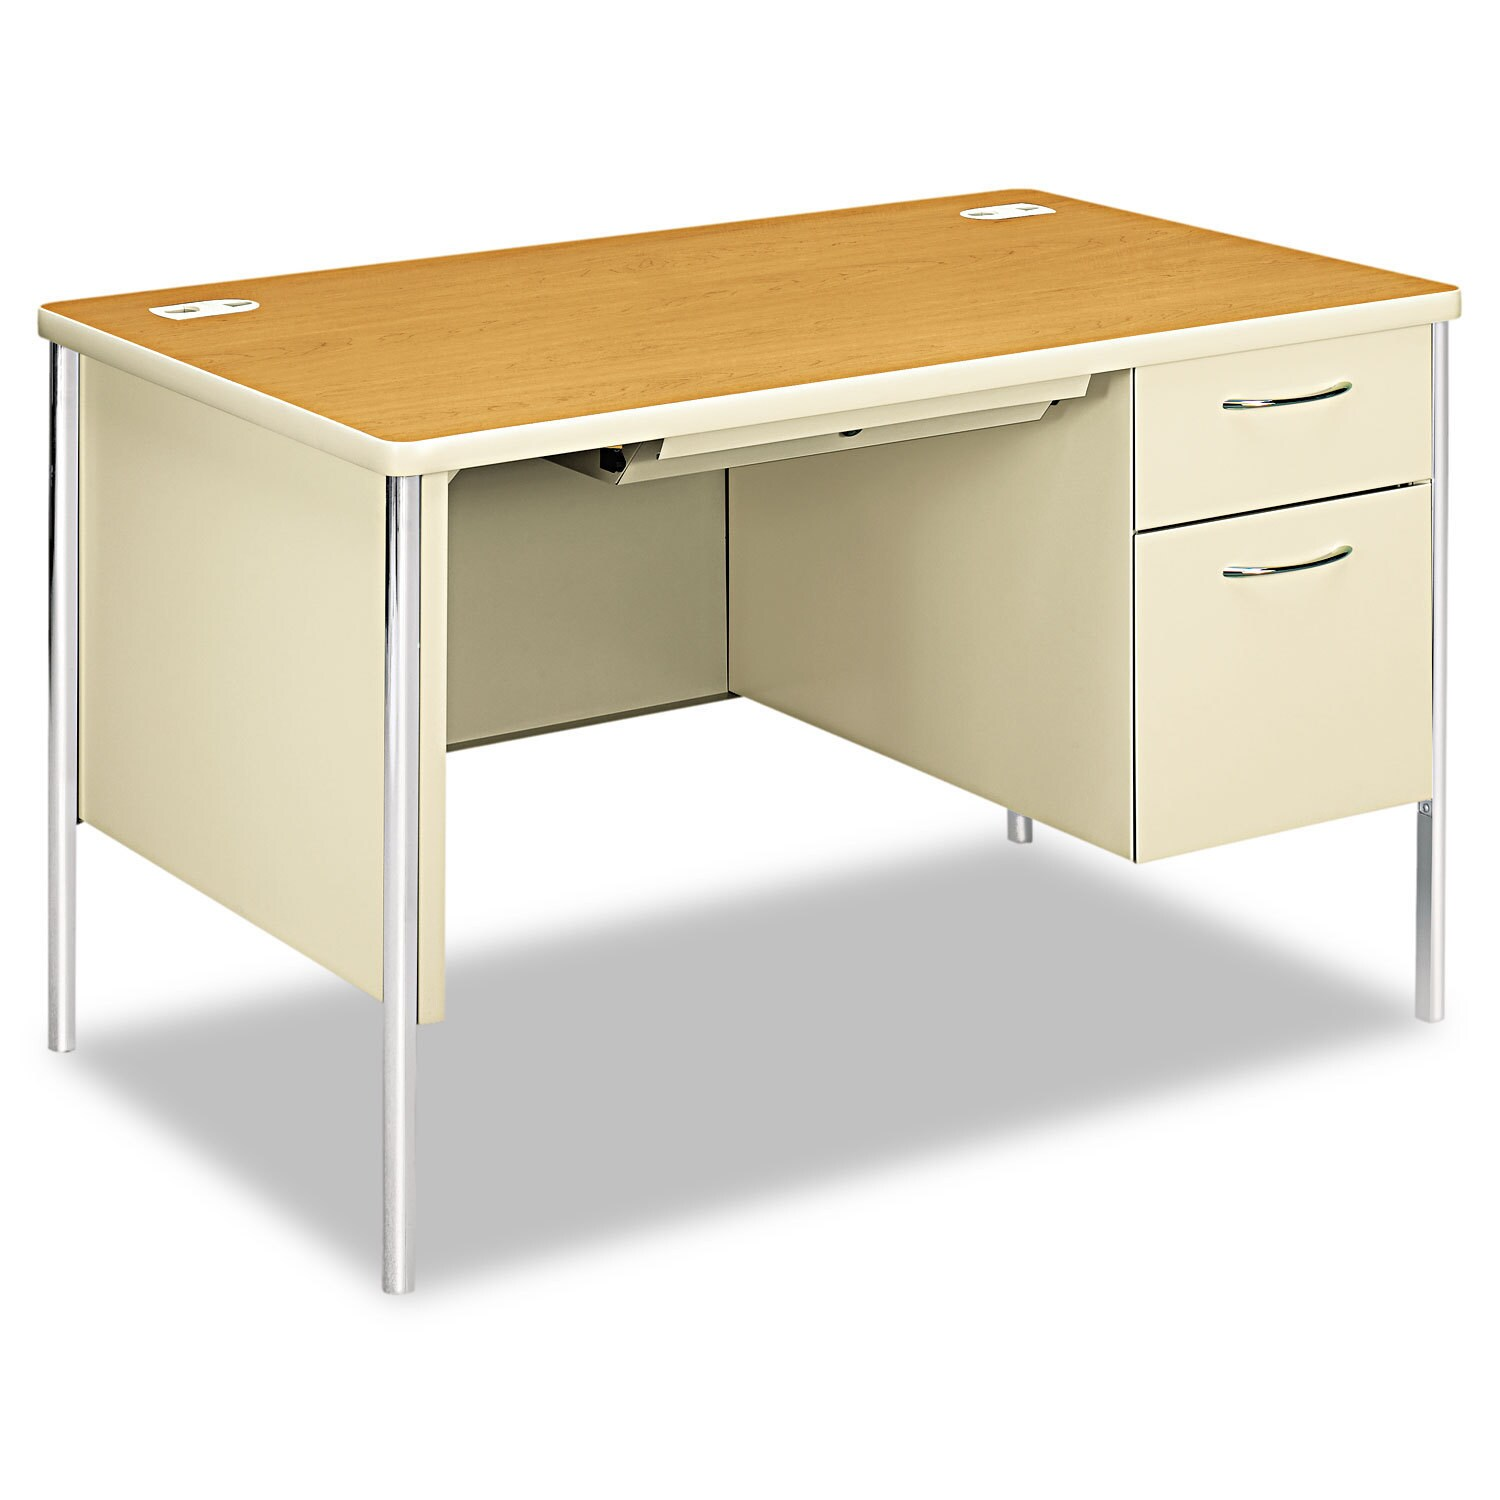 pinterest series single ofm mesa desk products pedestal pin